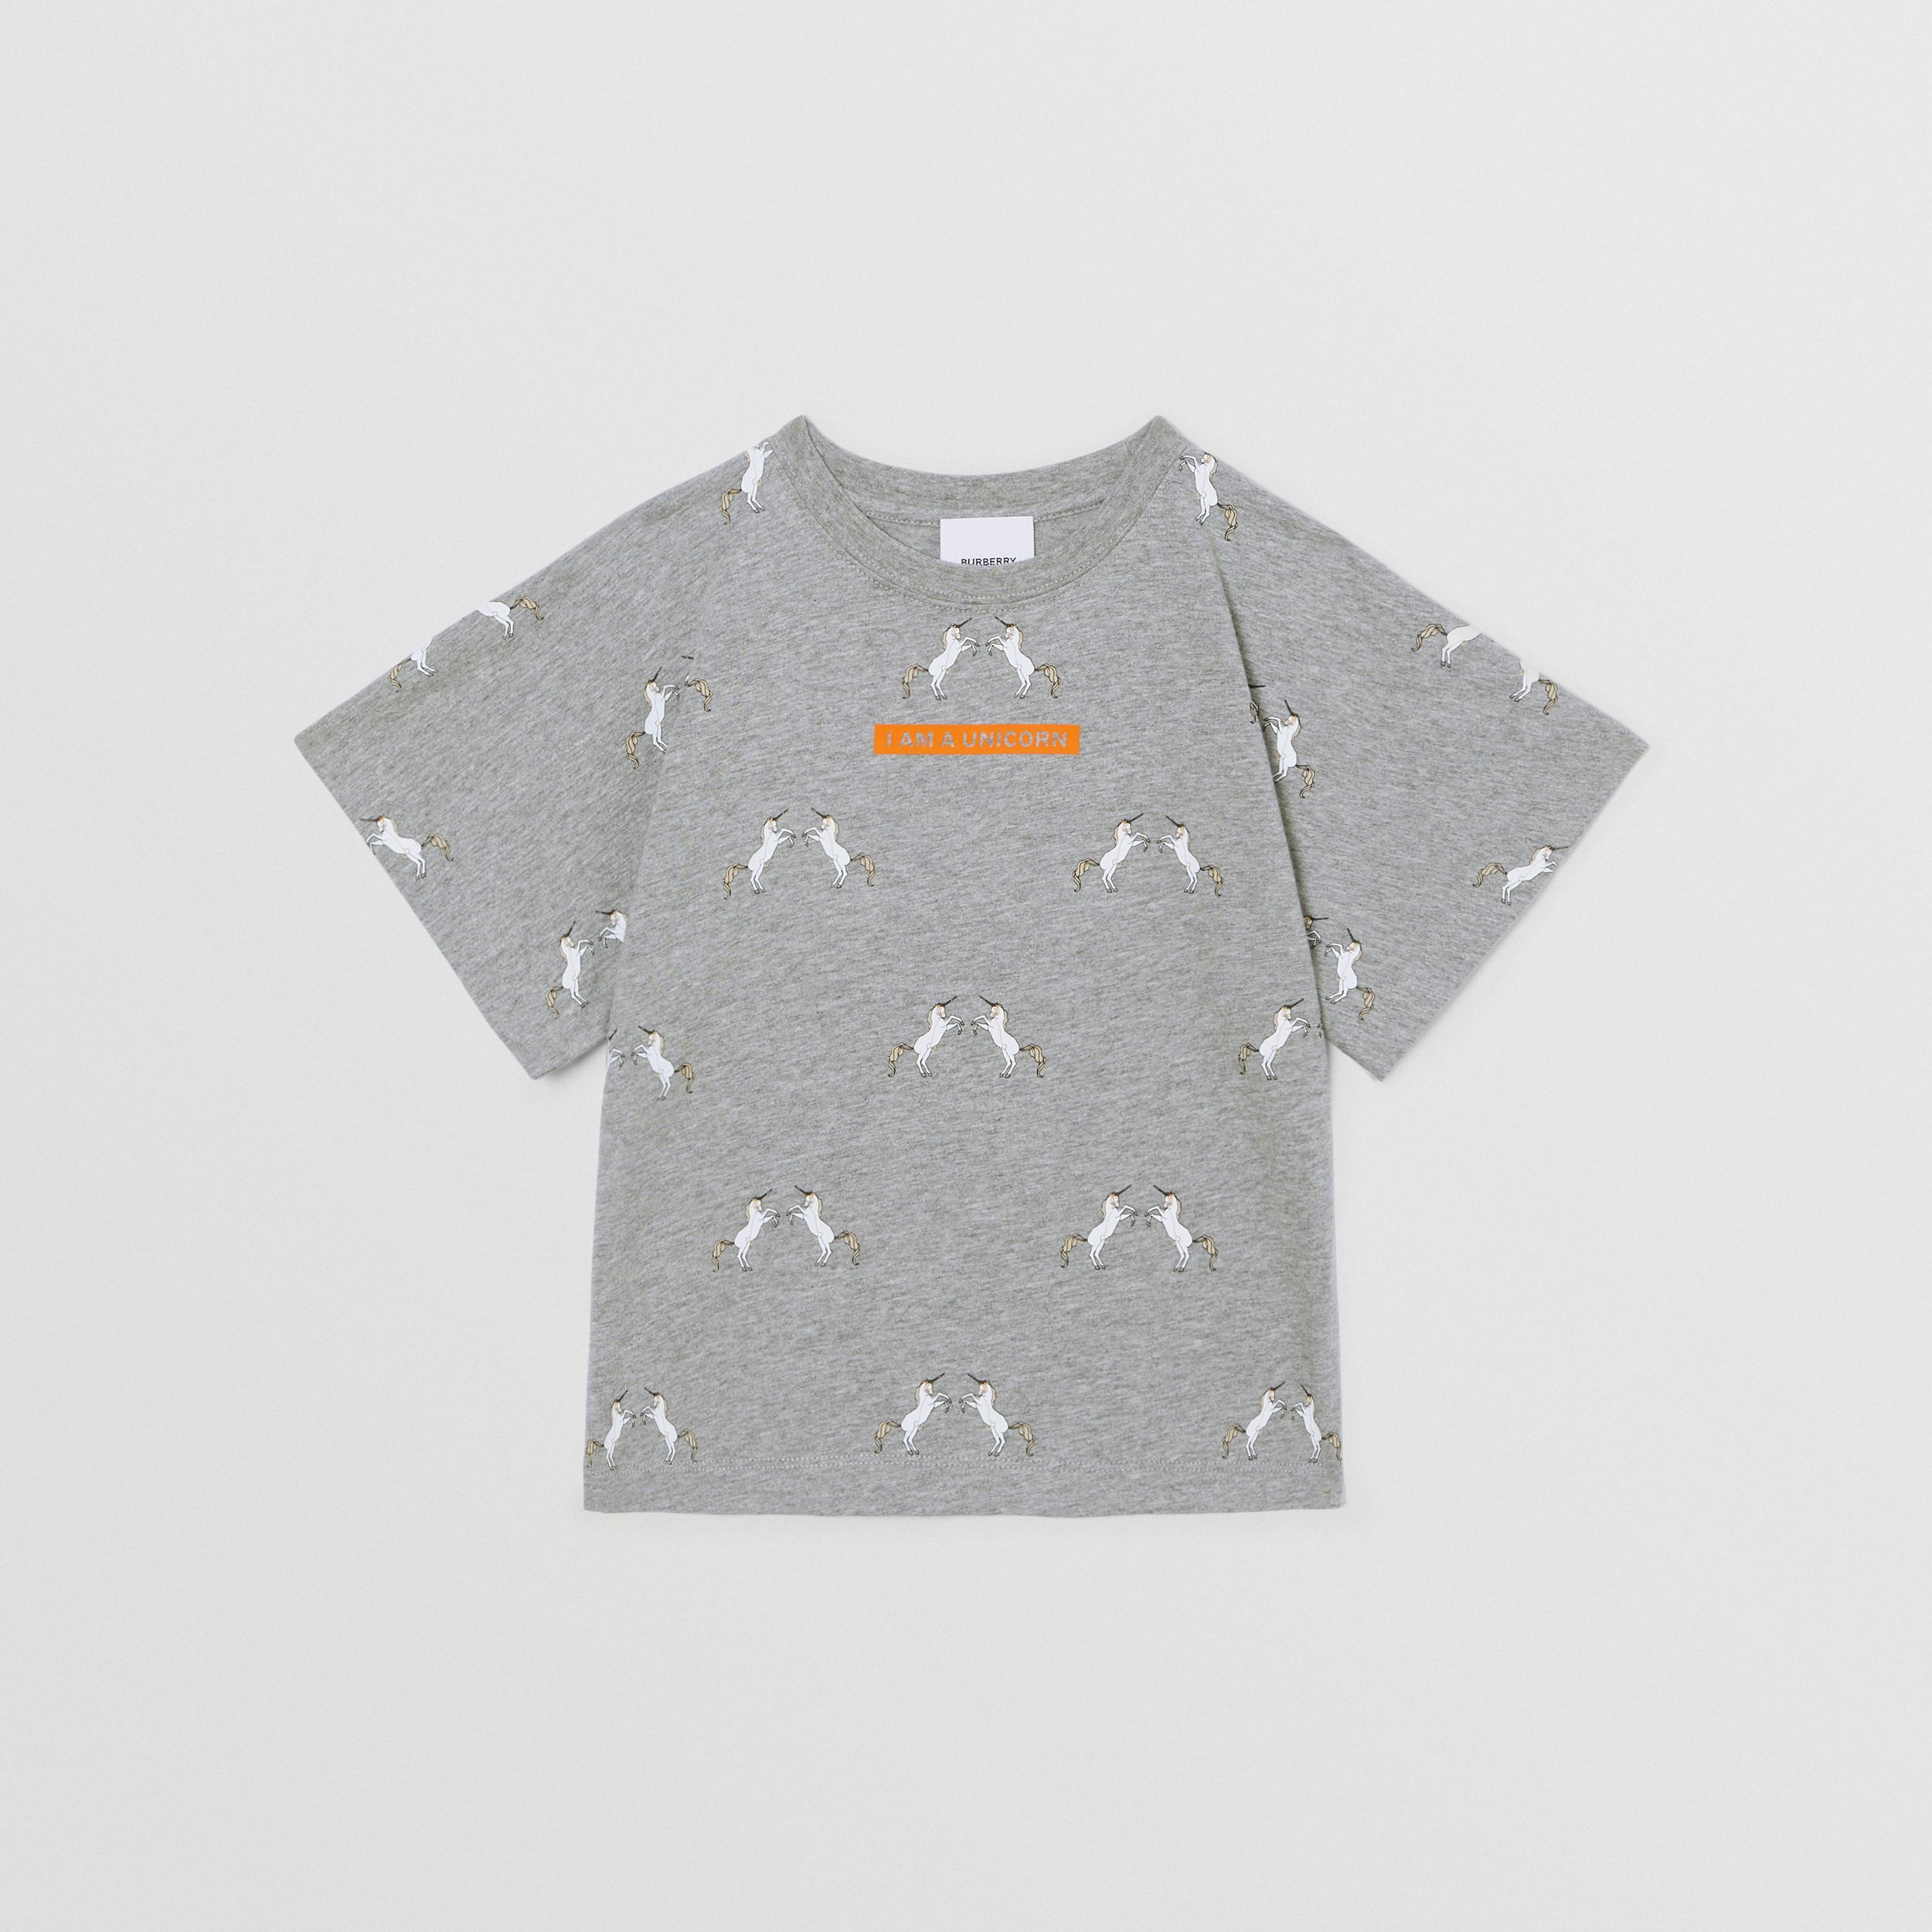 Unicorn Slogan Print Cotton T-shirt in Grey Melange | Burberry Hong Kong S.A.R. - 1